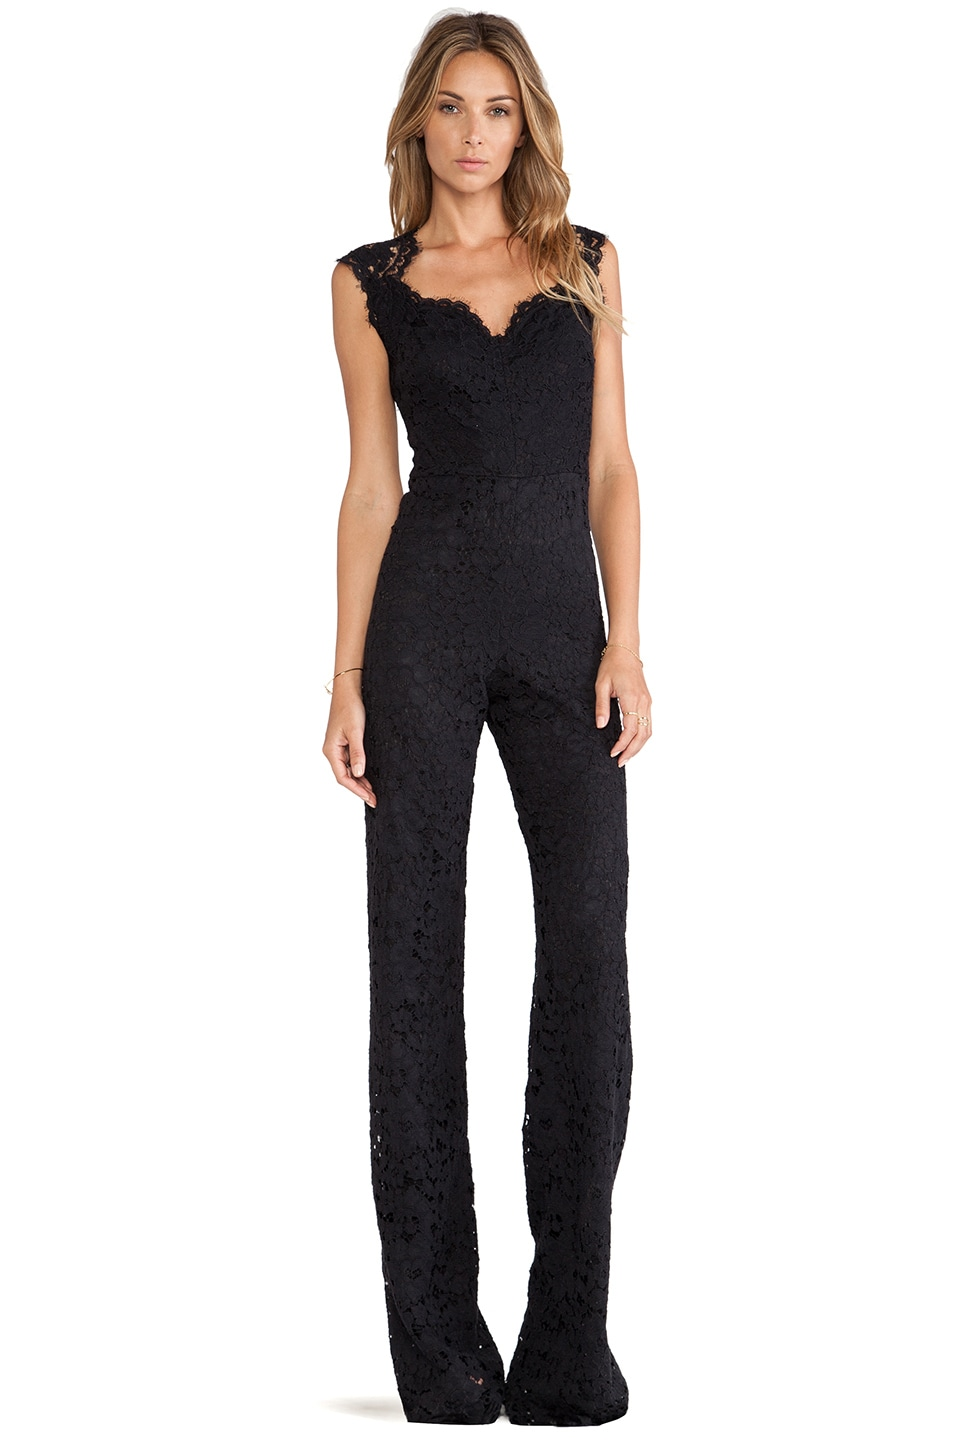 Alexis Aruba Lace Jumpsuit in Black Lace | REVOLVE